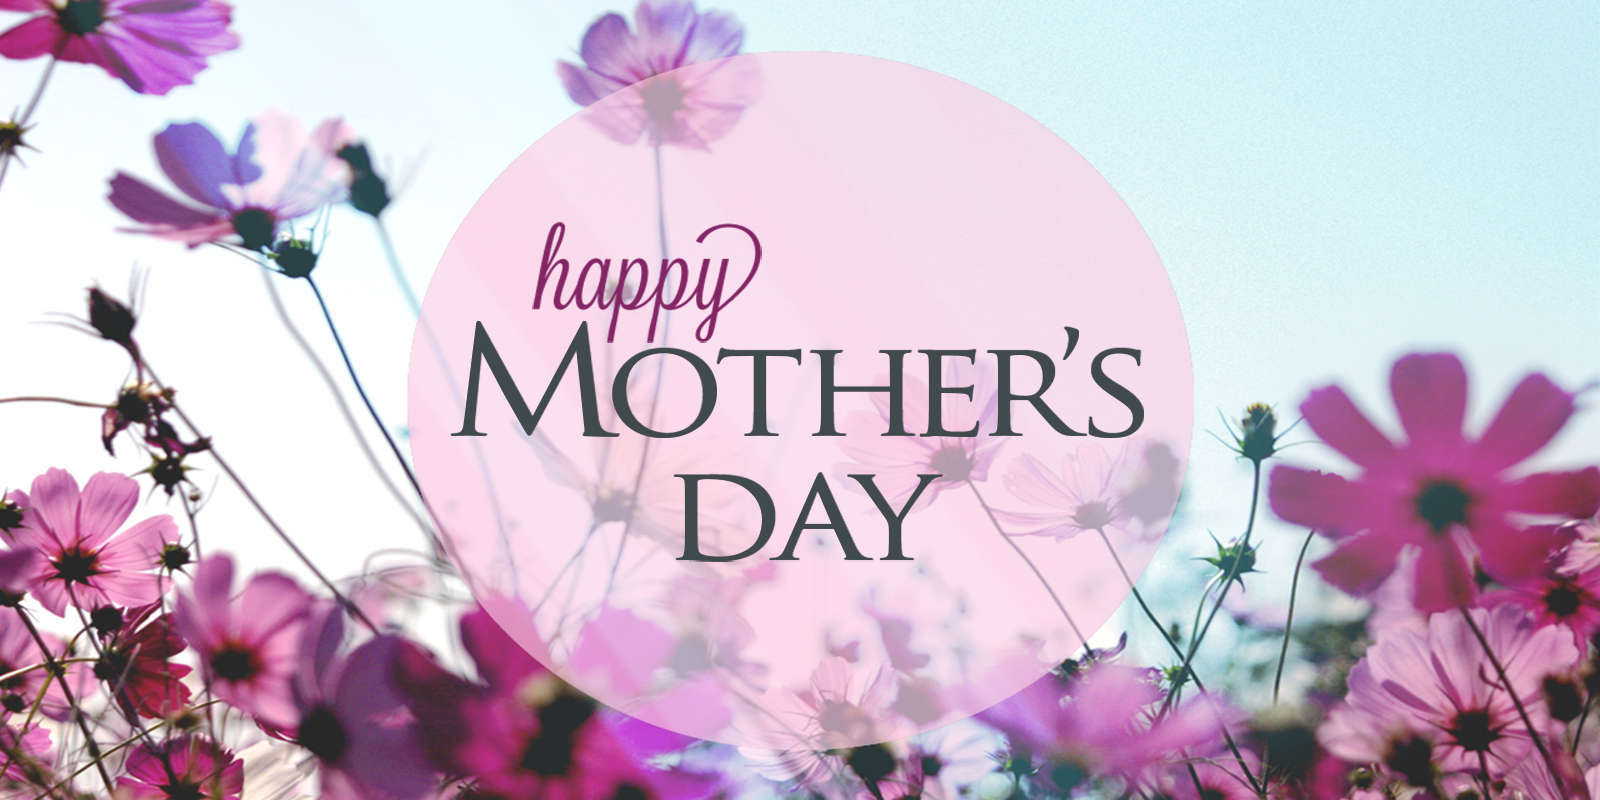 Mothers day HD wallpapers Free Download ~ Happy Mothers Day poems